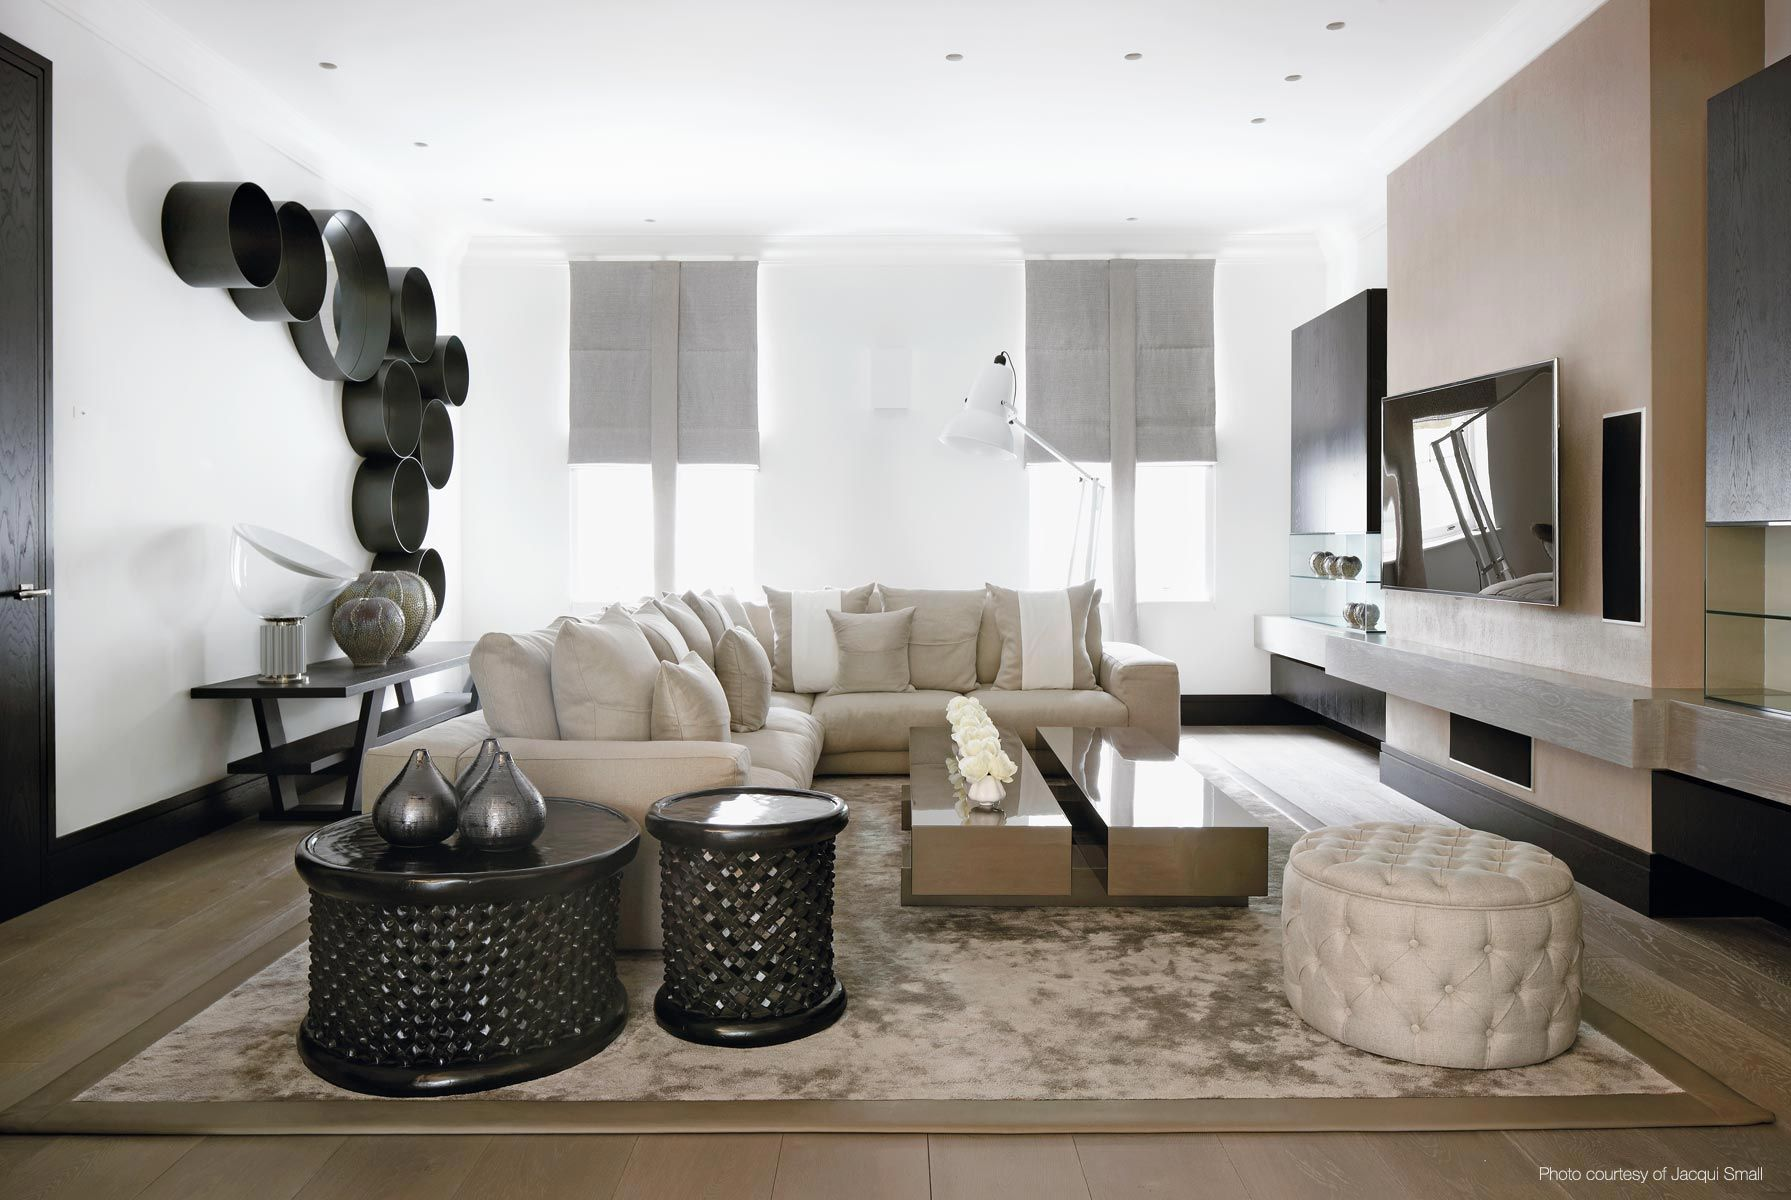 Living Room Design Contemporary Glamorous Kelly Hoppen Couturekellyhoppen Interior Designcontemporary Review